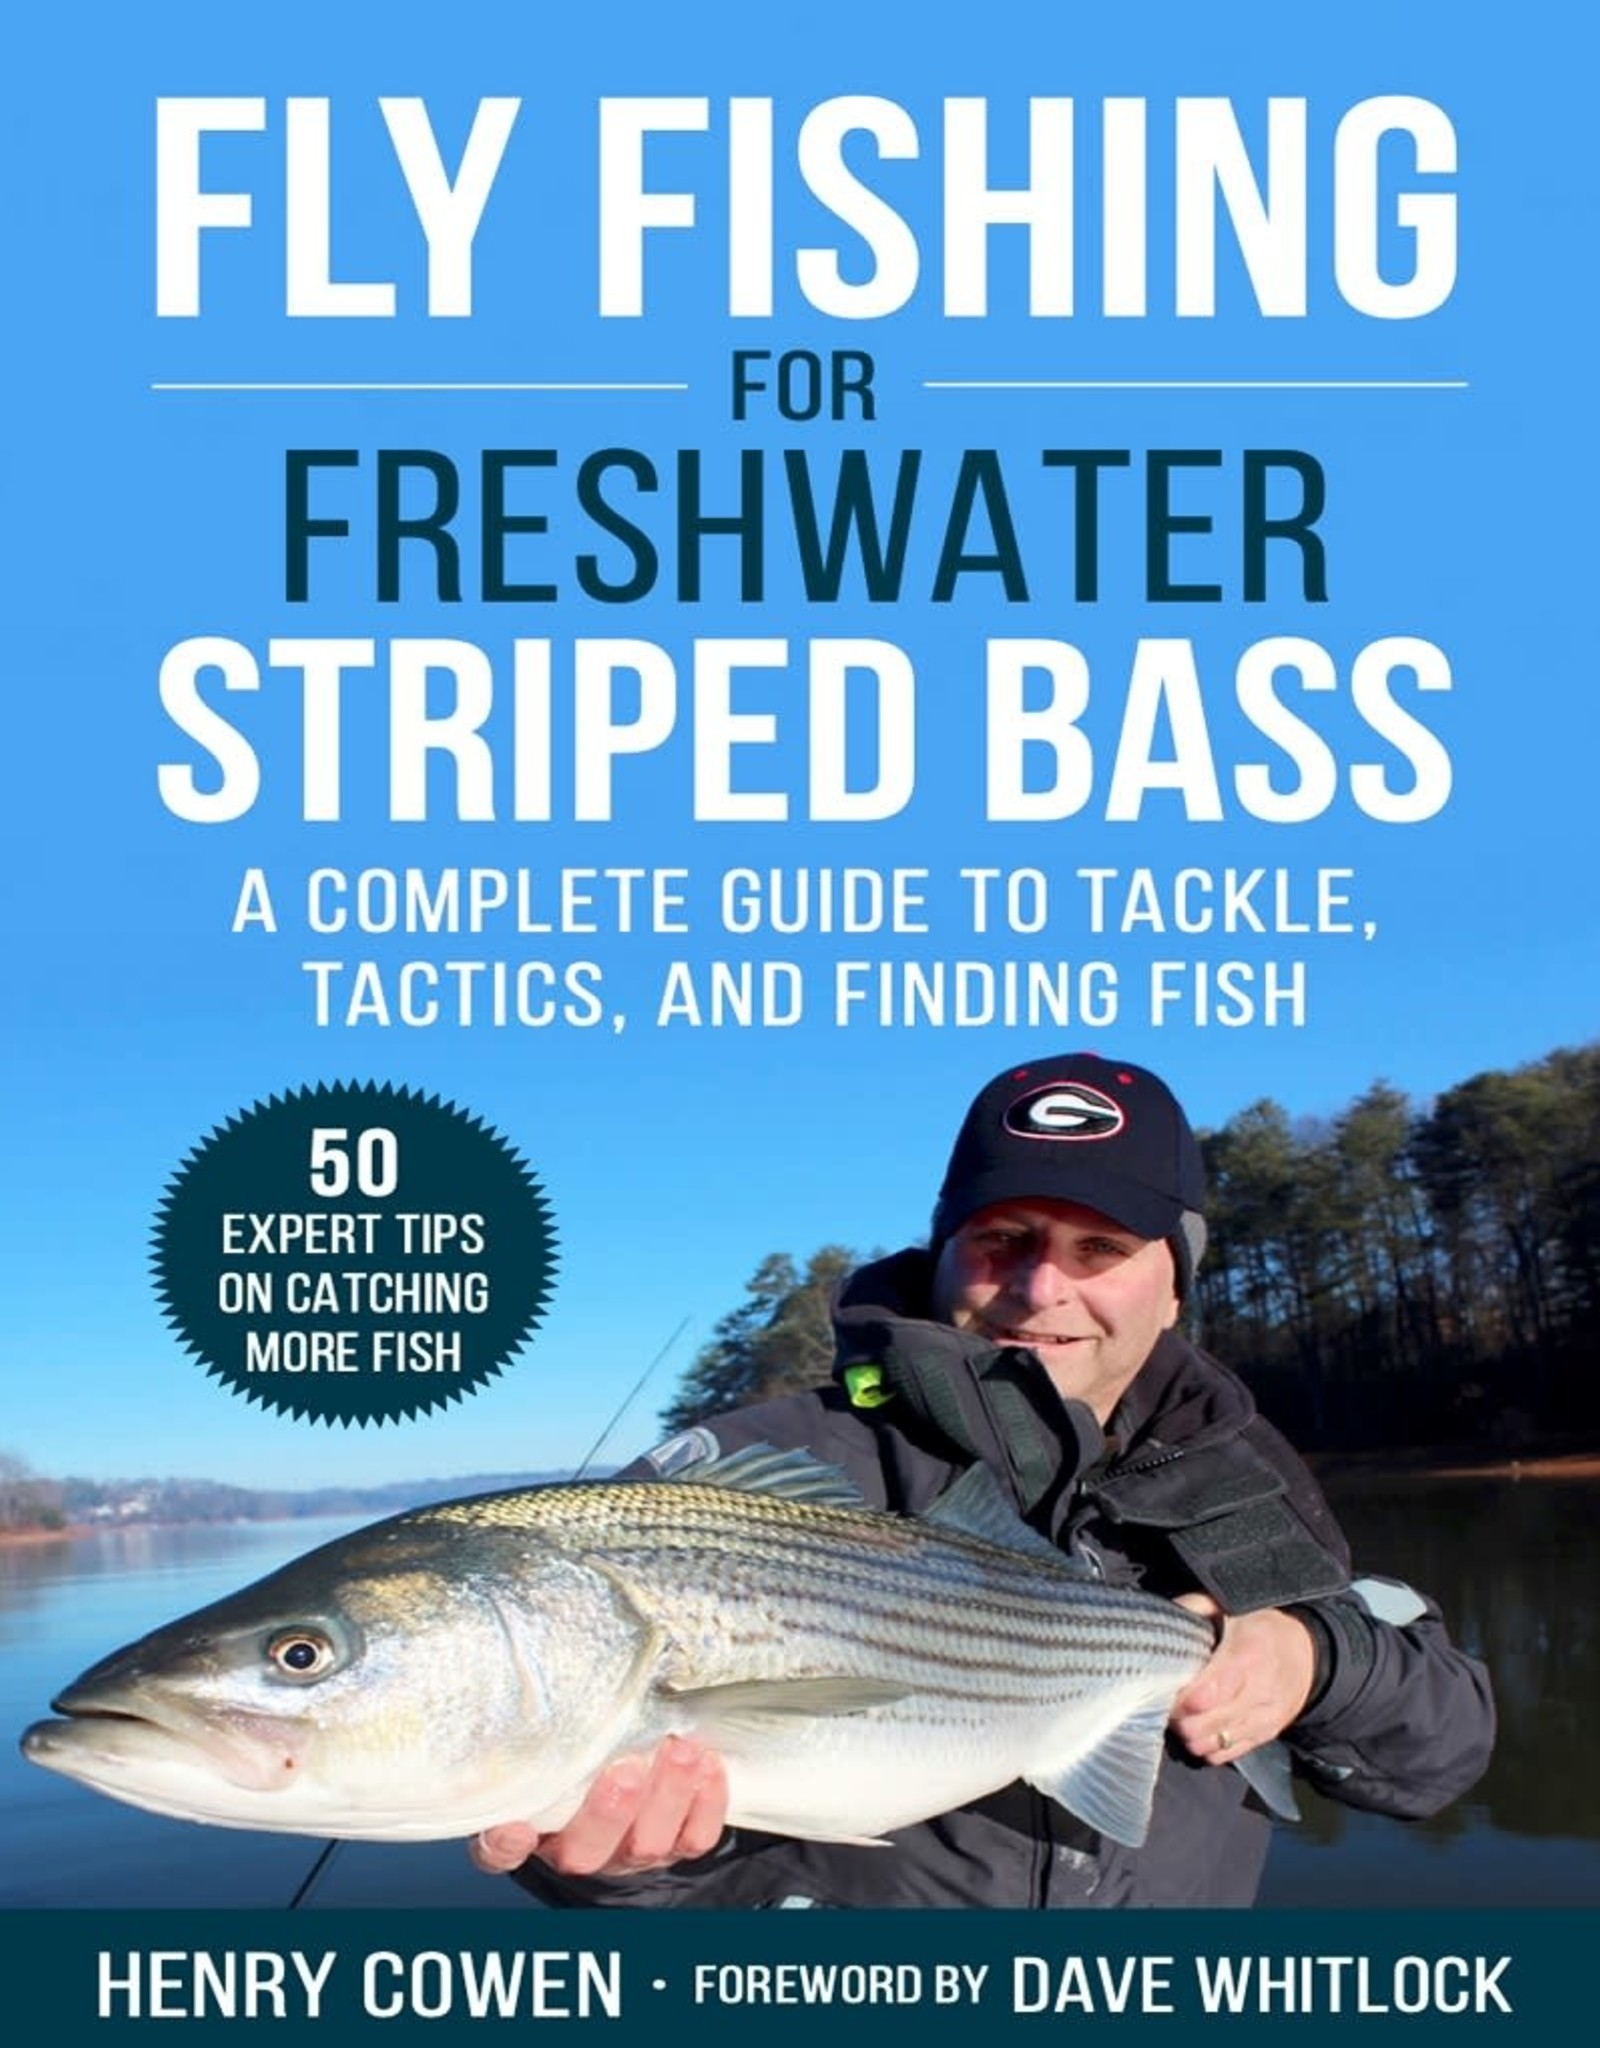 Henry Cowen Fly Fishing for Freshwater Striped Bass - Henry Cowen